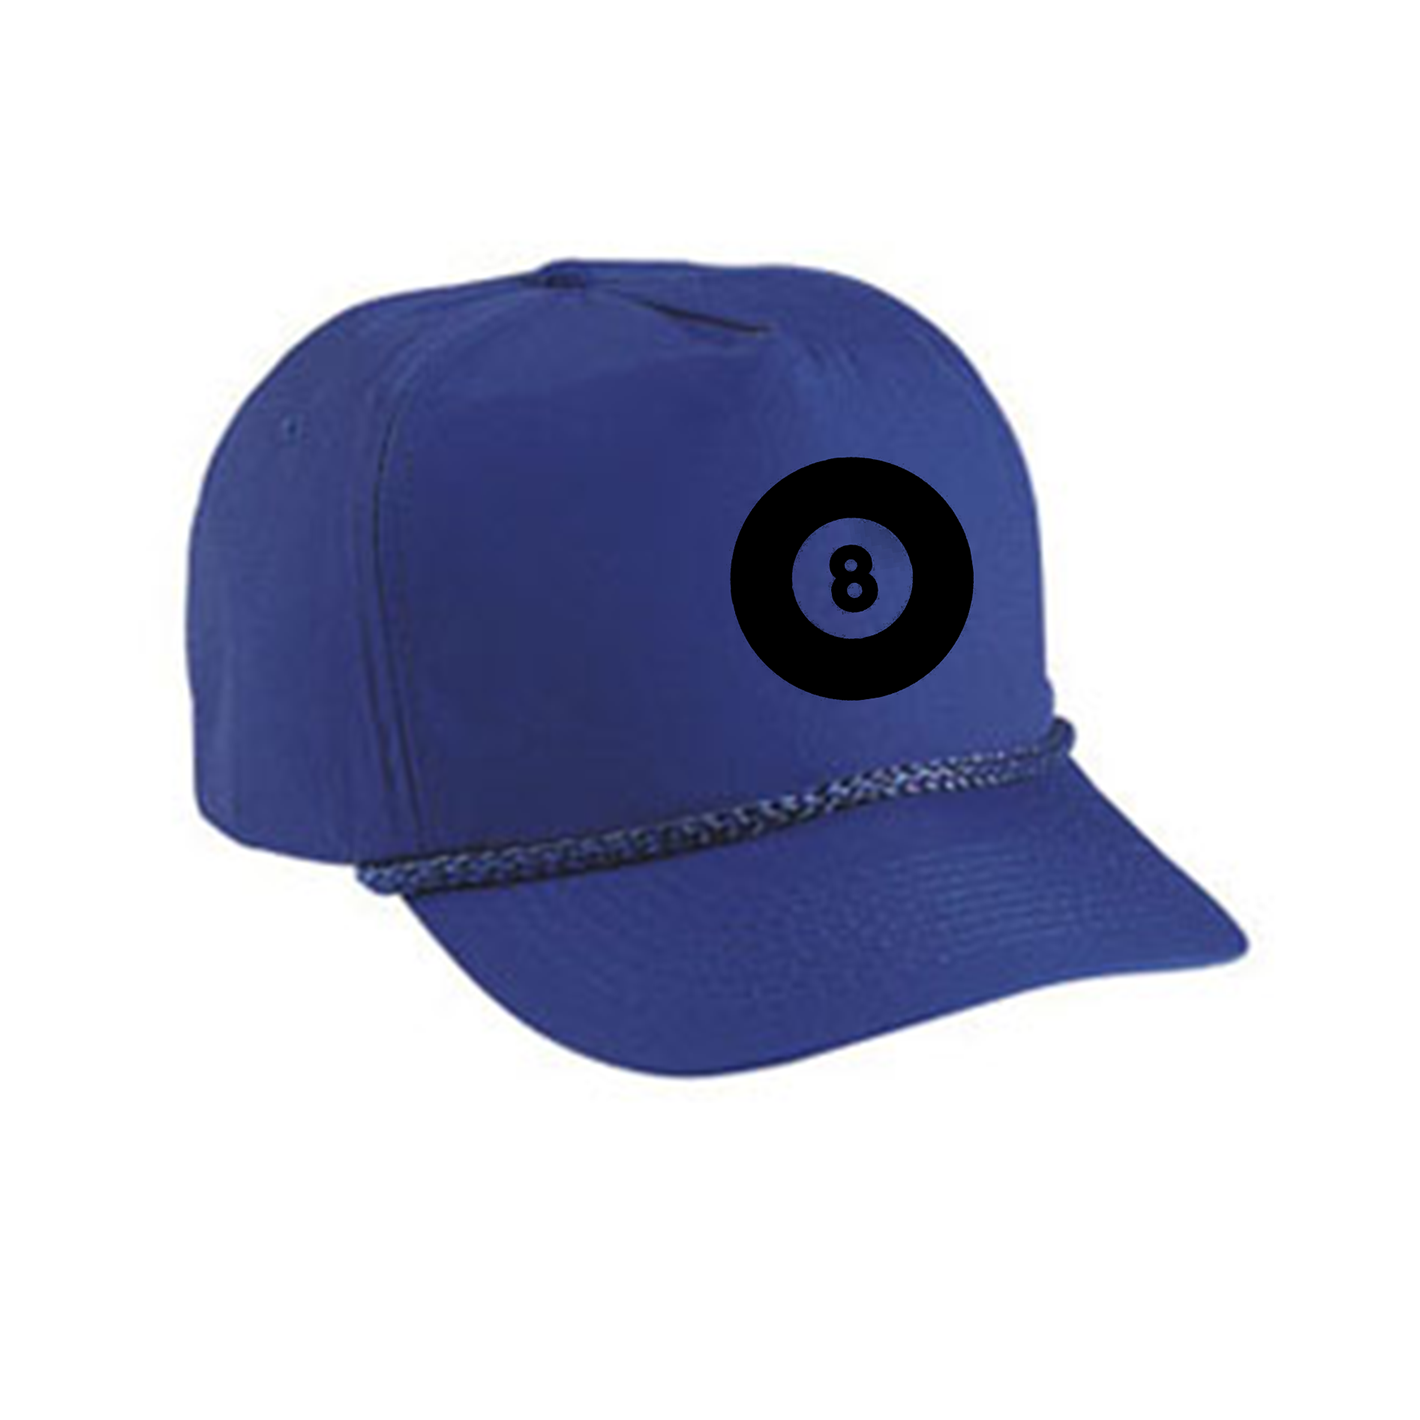 custom design of Cobra PLG - Poplin Leather Strap Golf Cap